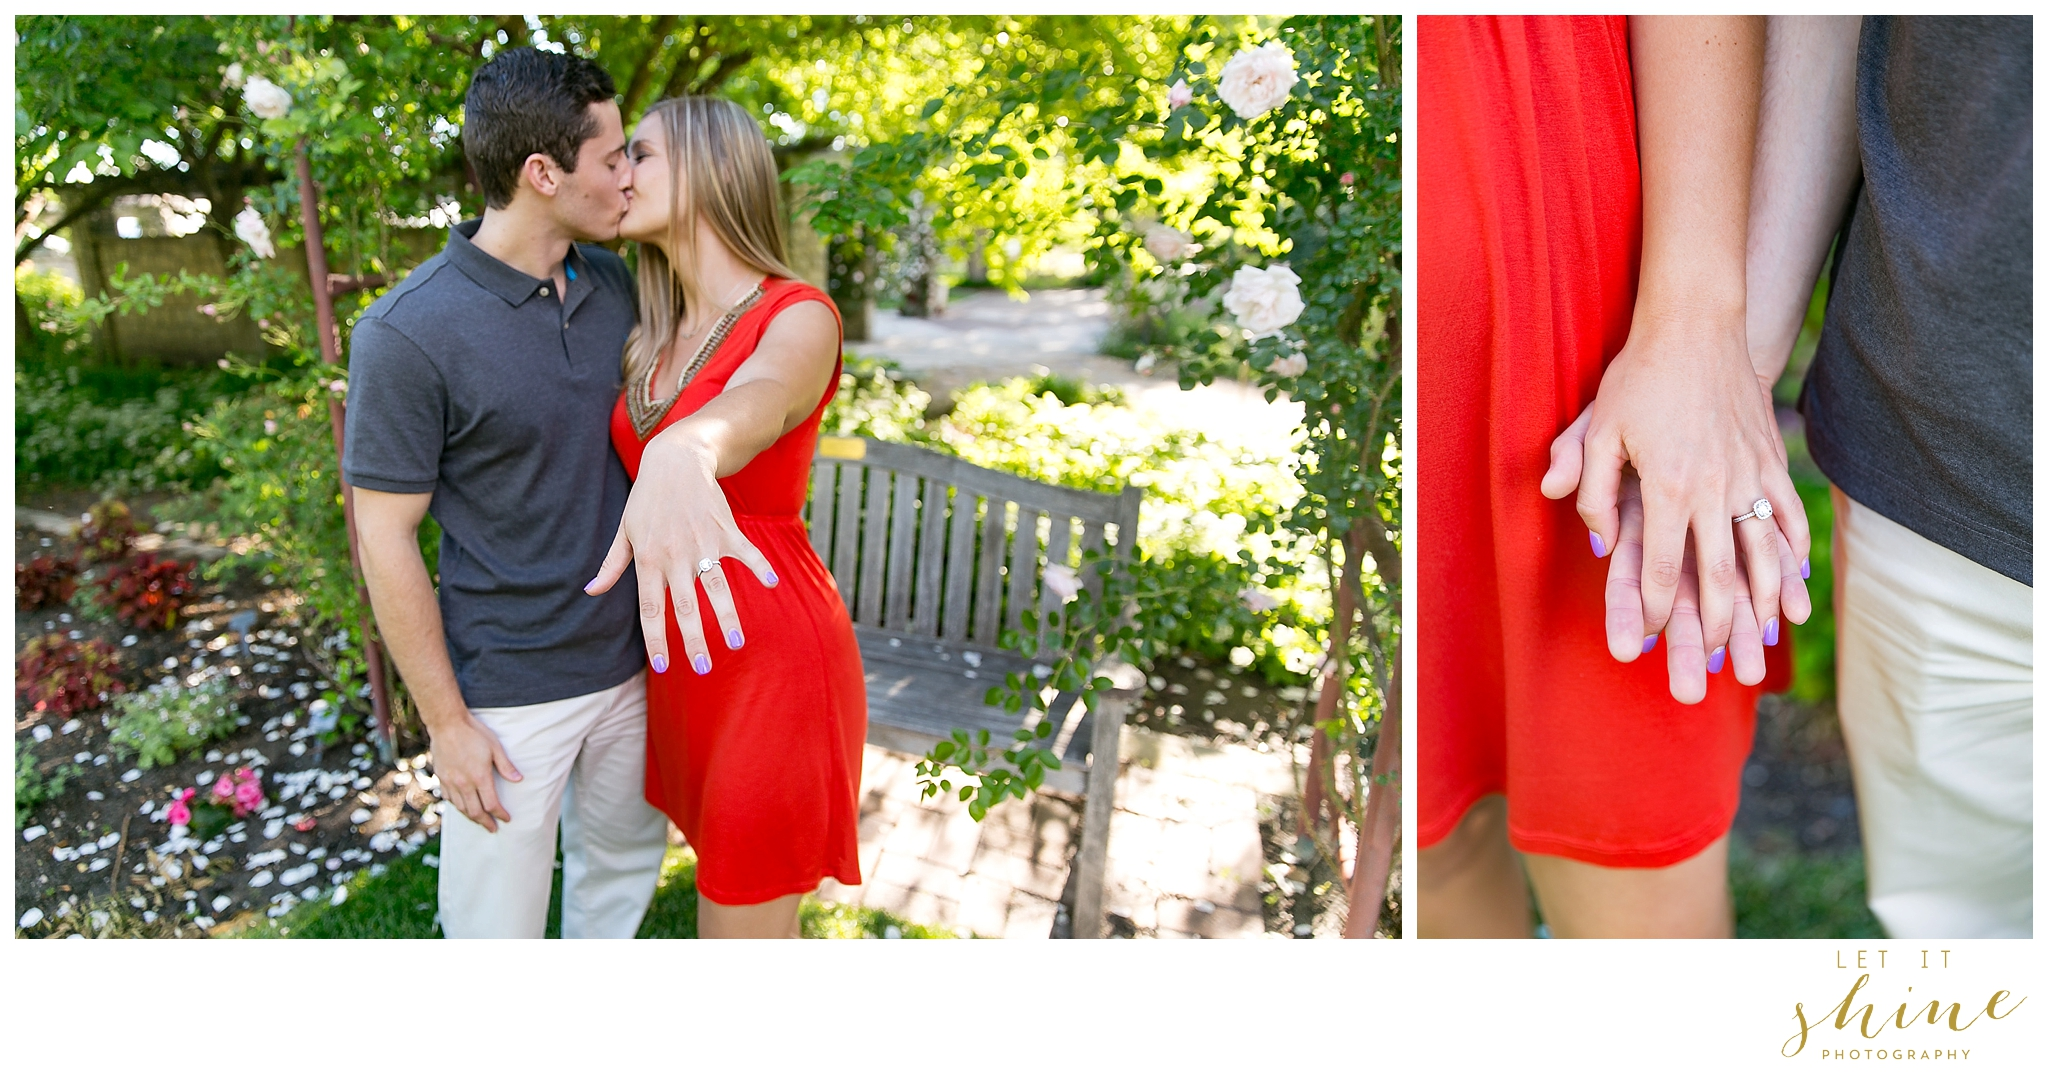 Idaho Botanical Garden Proposal Photographer-9049.jpg